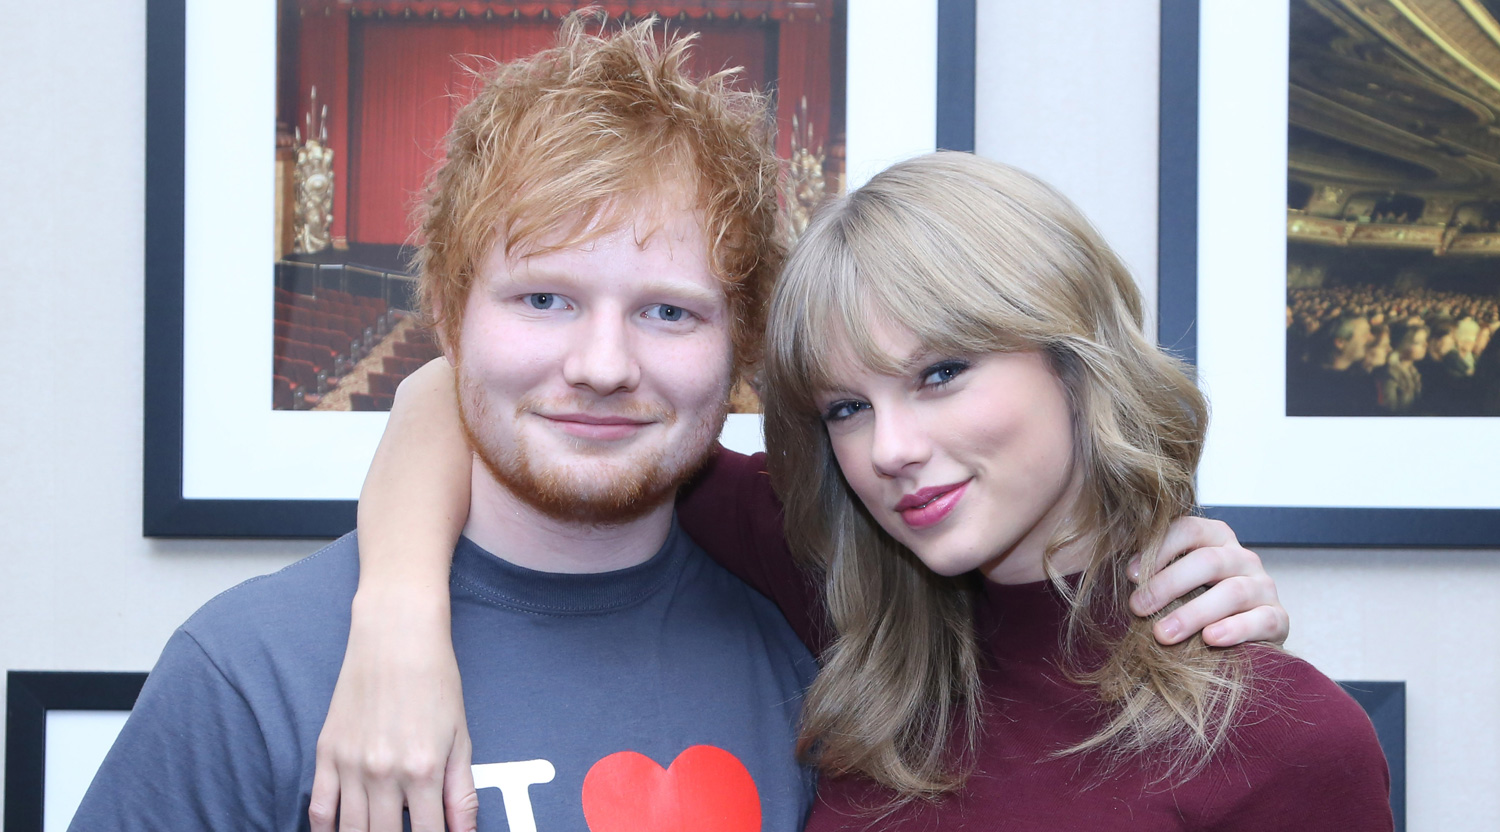 Taylor swift and ed sheeran dating yahoo. another site like craigslist for dating.